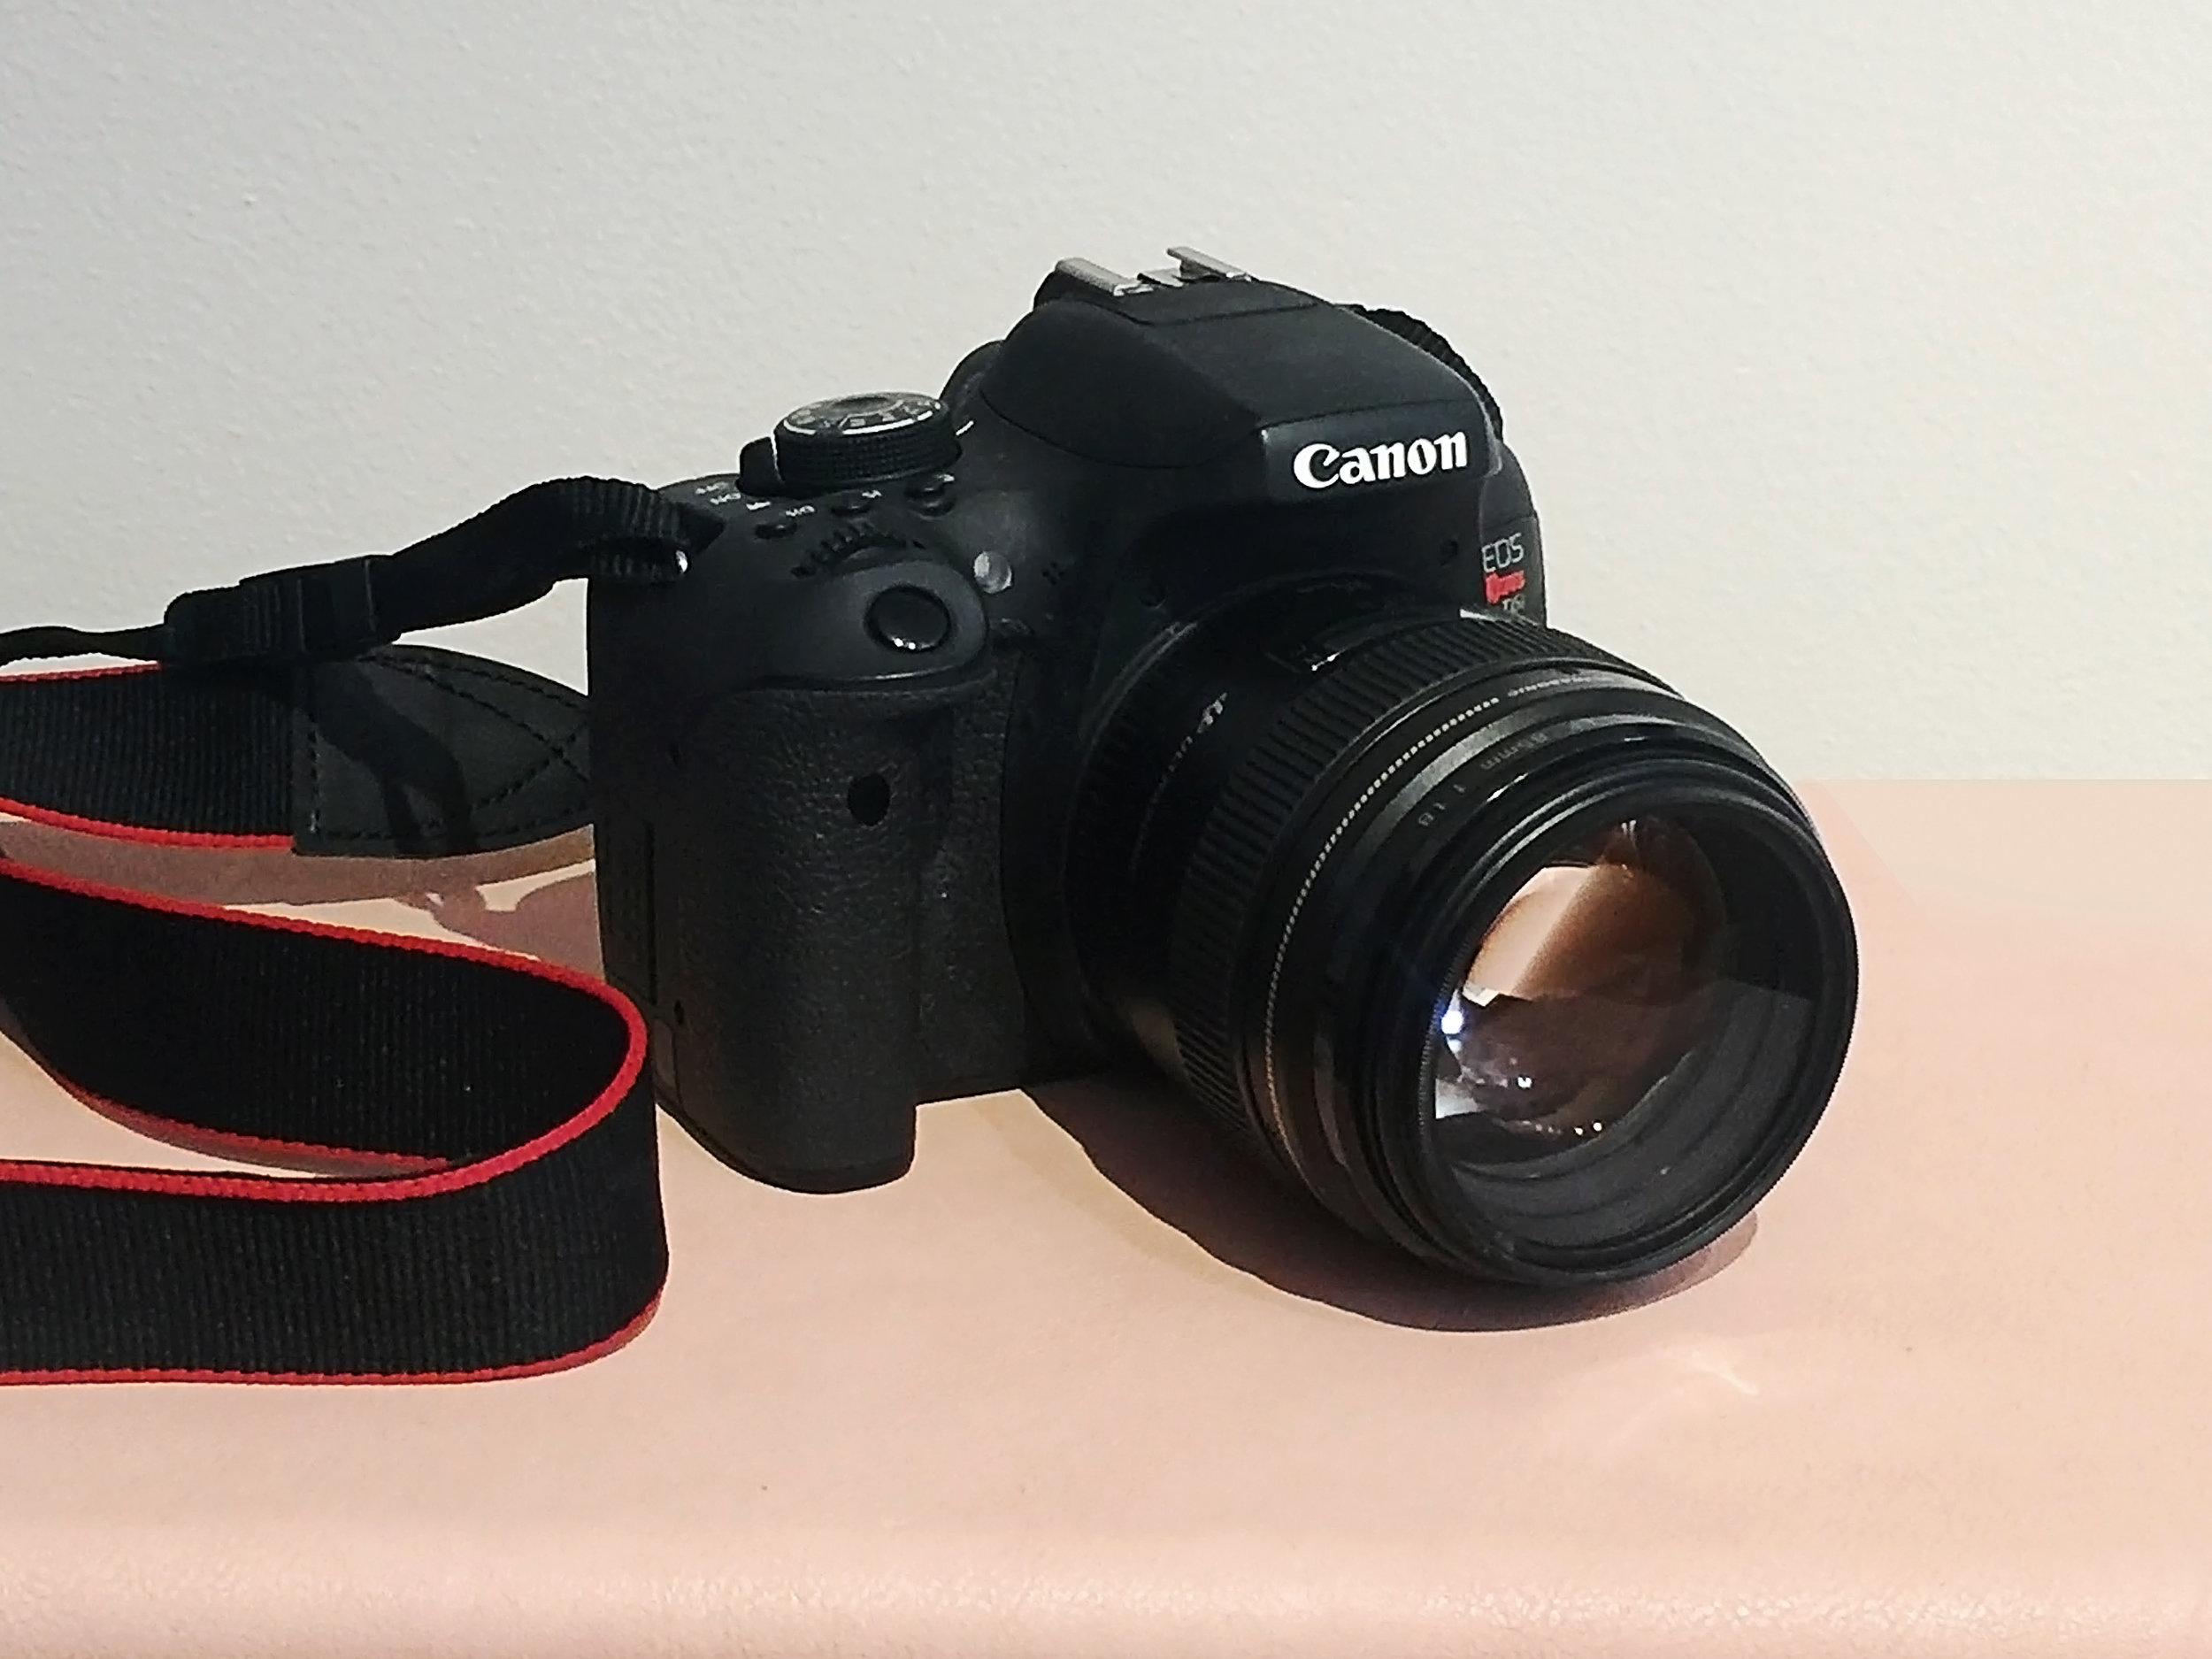 85mm-canon-review.jpg